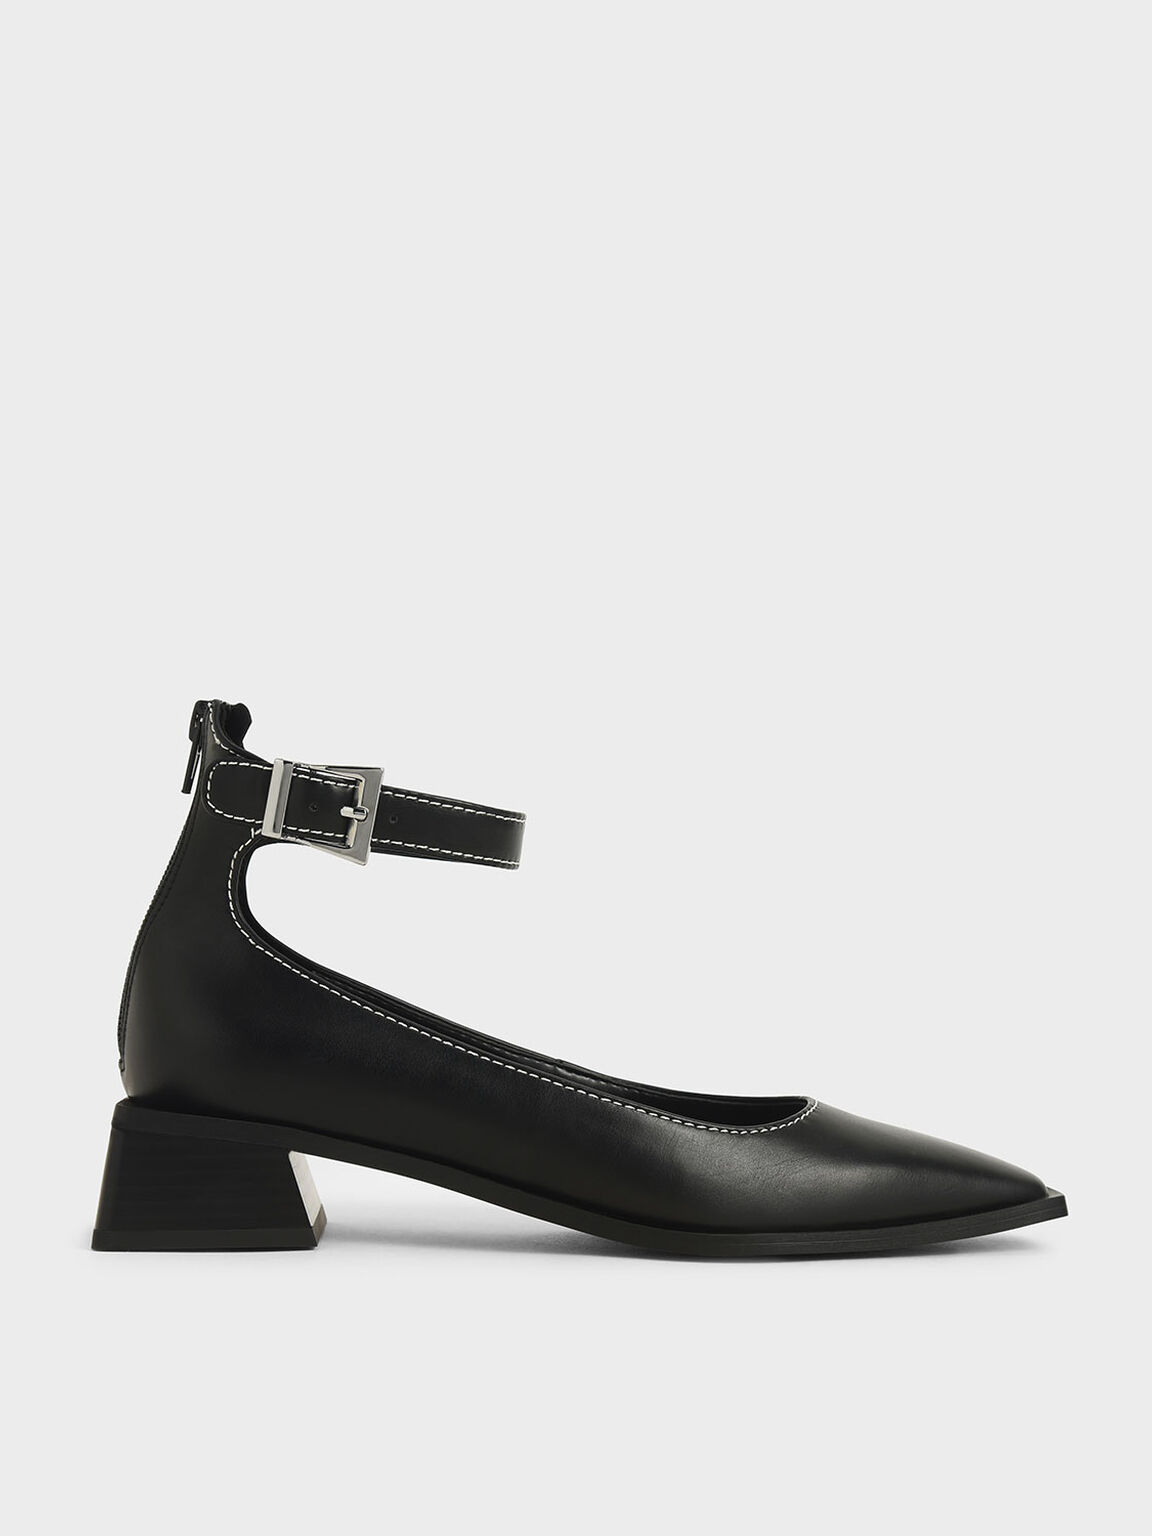 Ankle Strap Square Toe Pumps, Black, hi-res